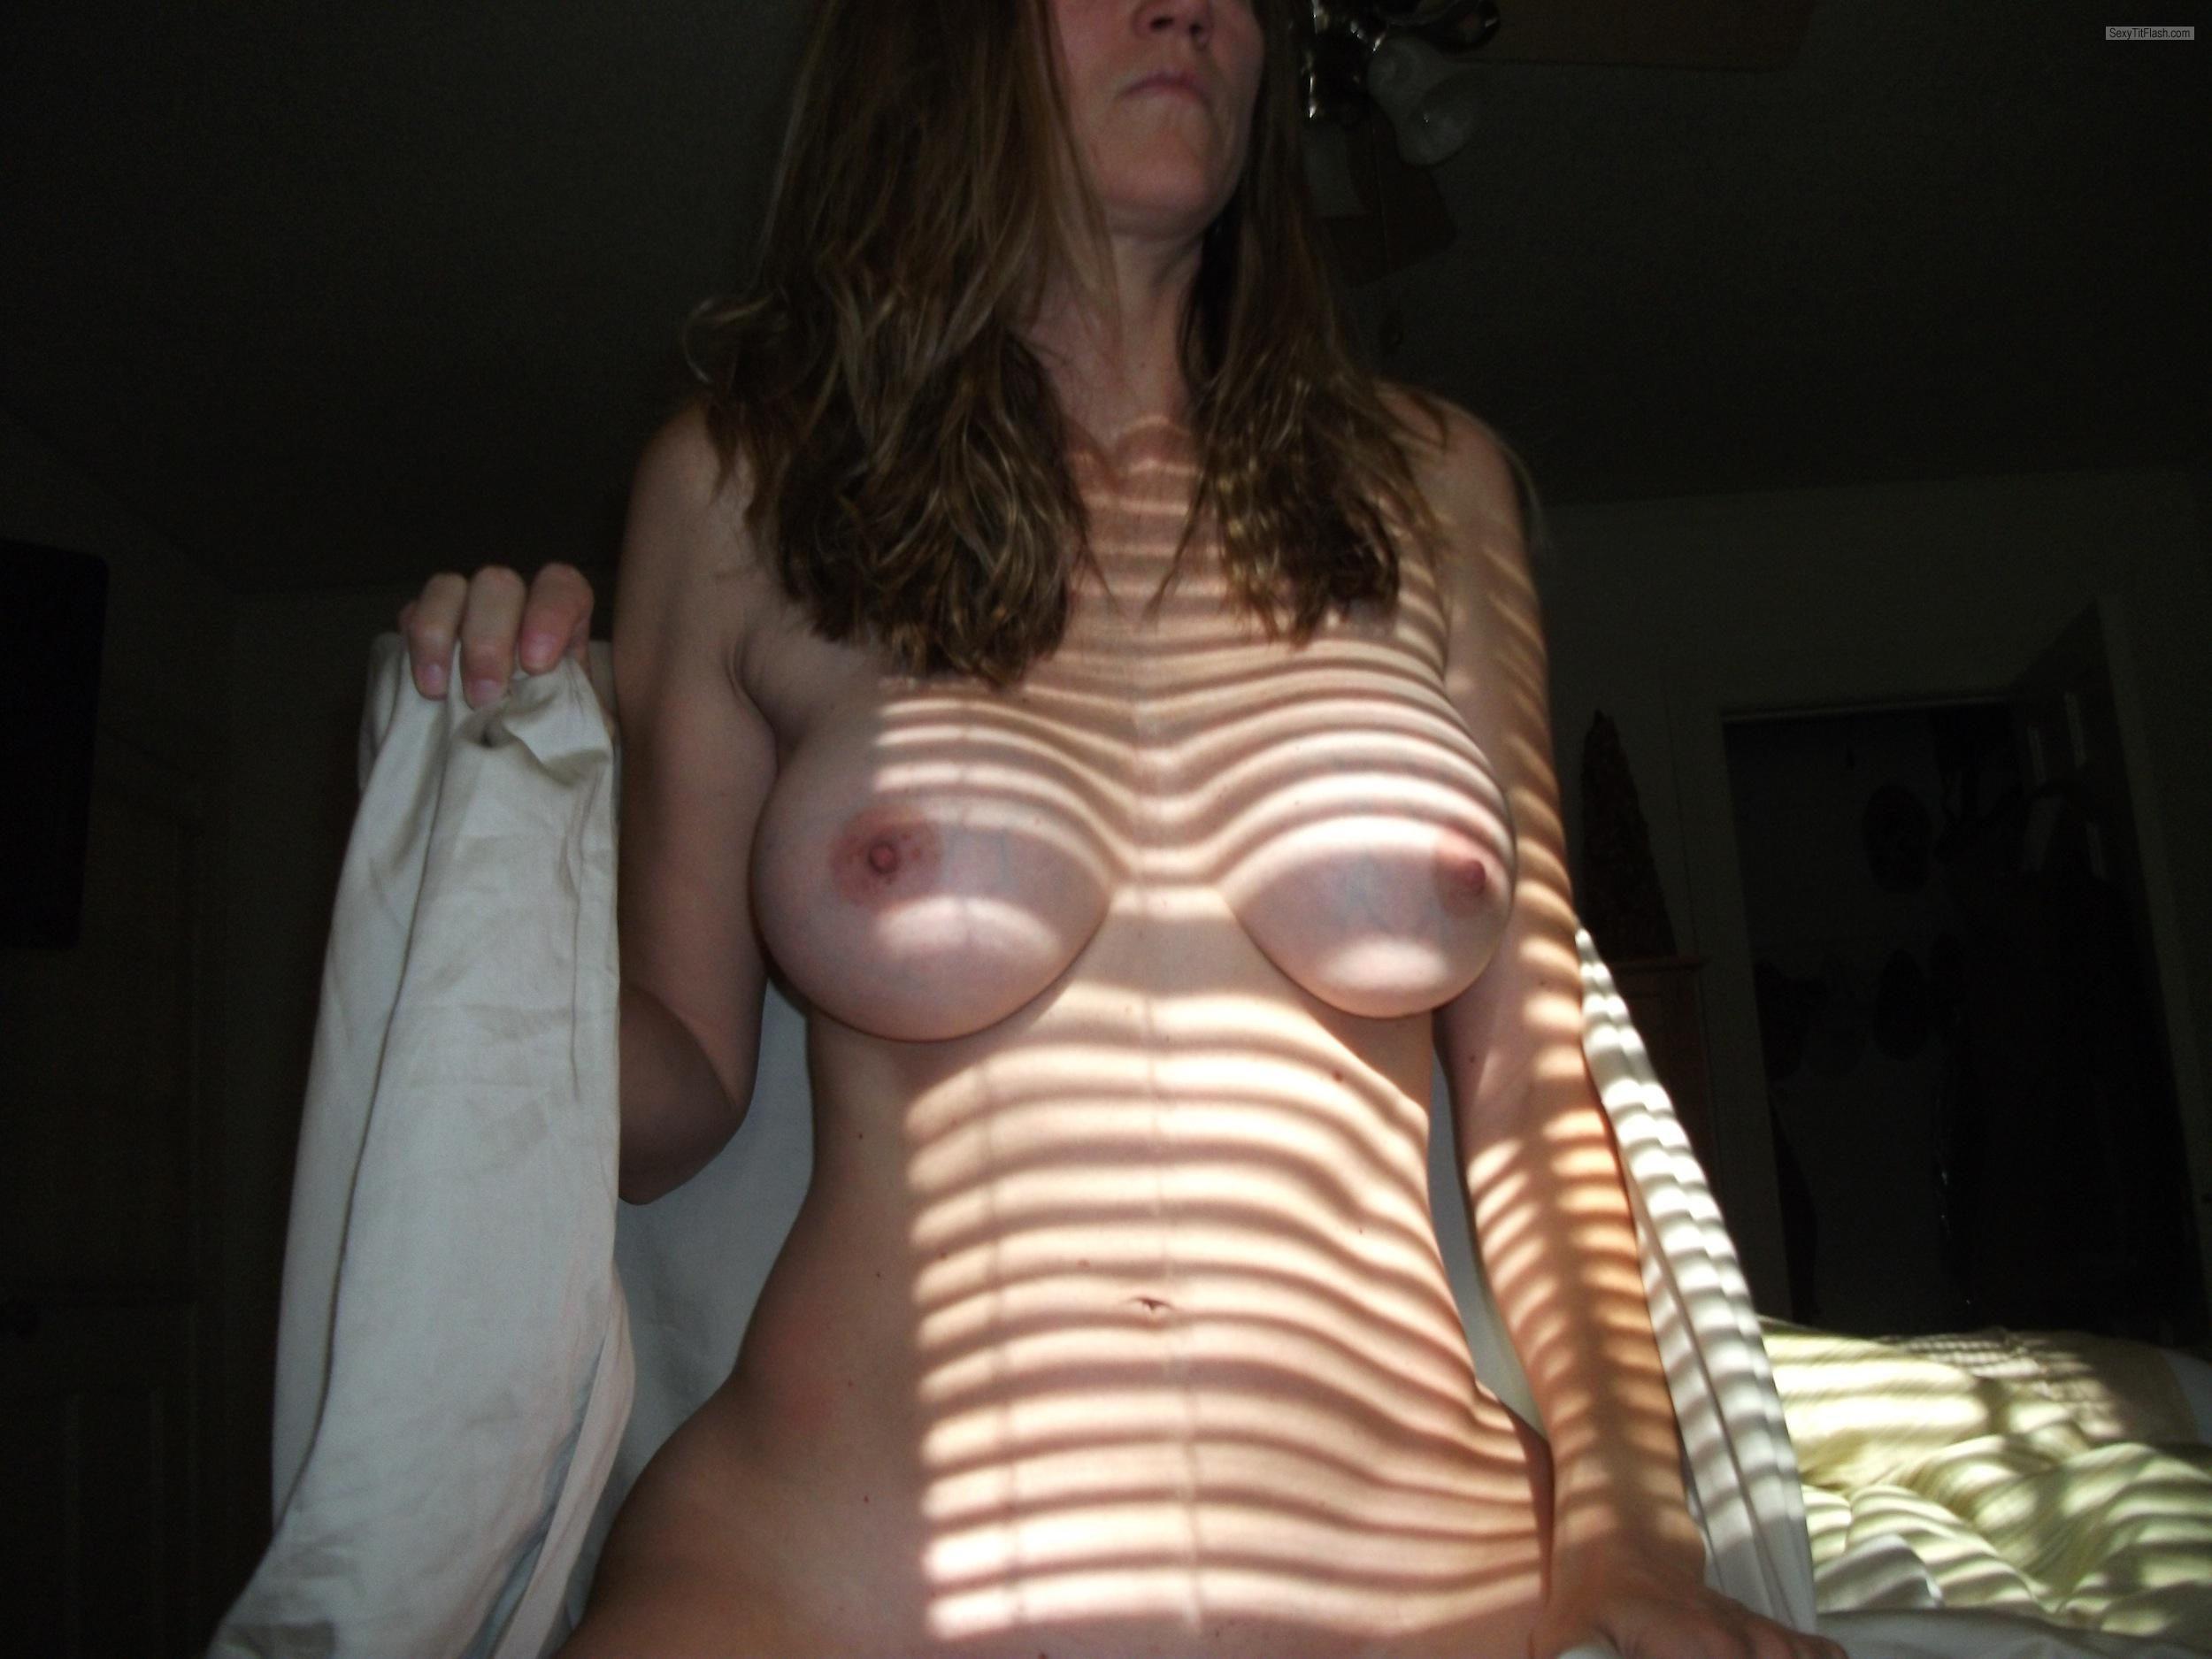 Tit Flash: Wife's Medium Tits - Nikki from United States